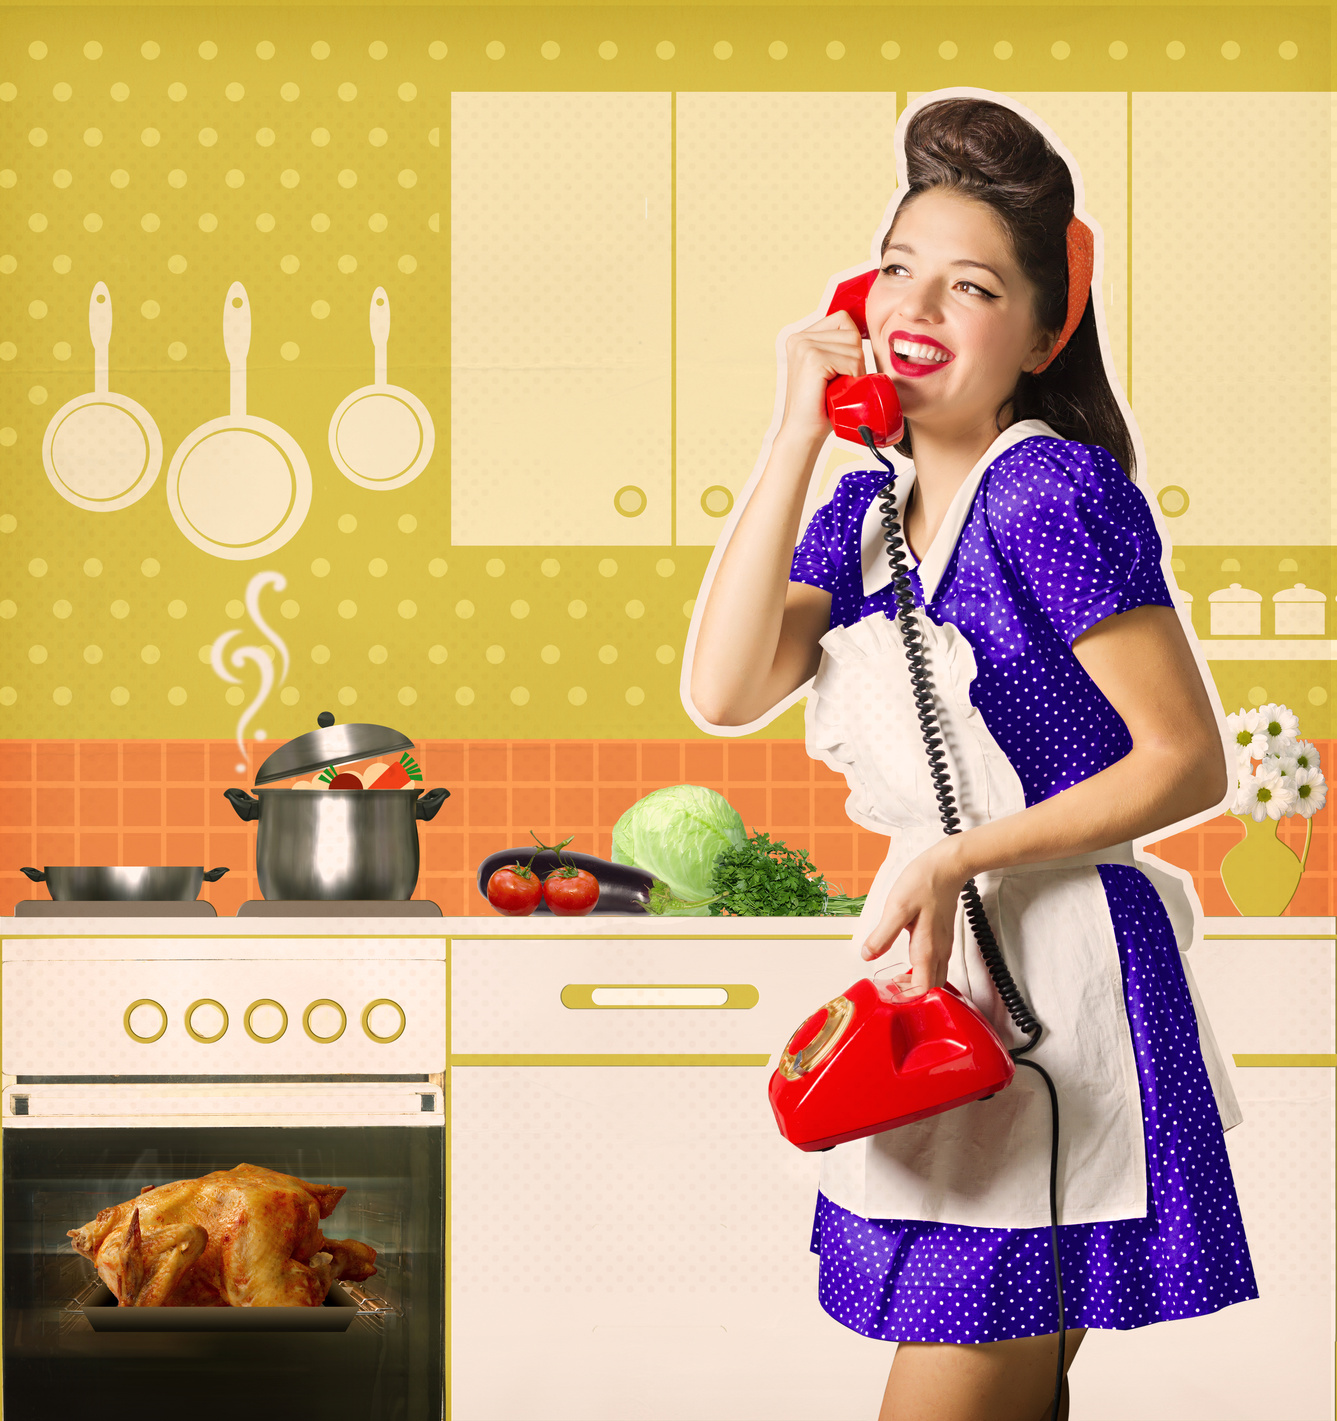 Retro woman talking on phone and cooks roasted chiicken on her kitchen interior. Poster on old paper